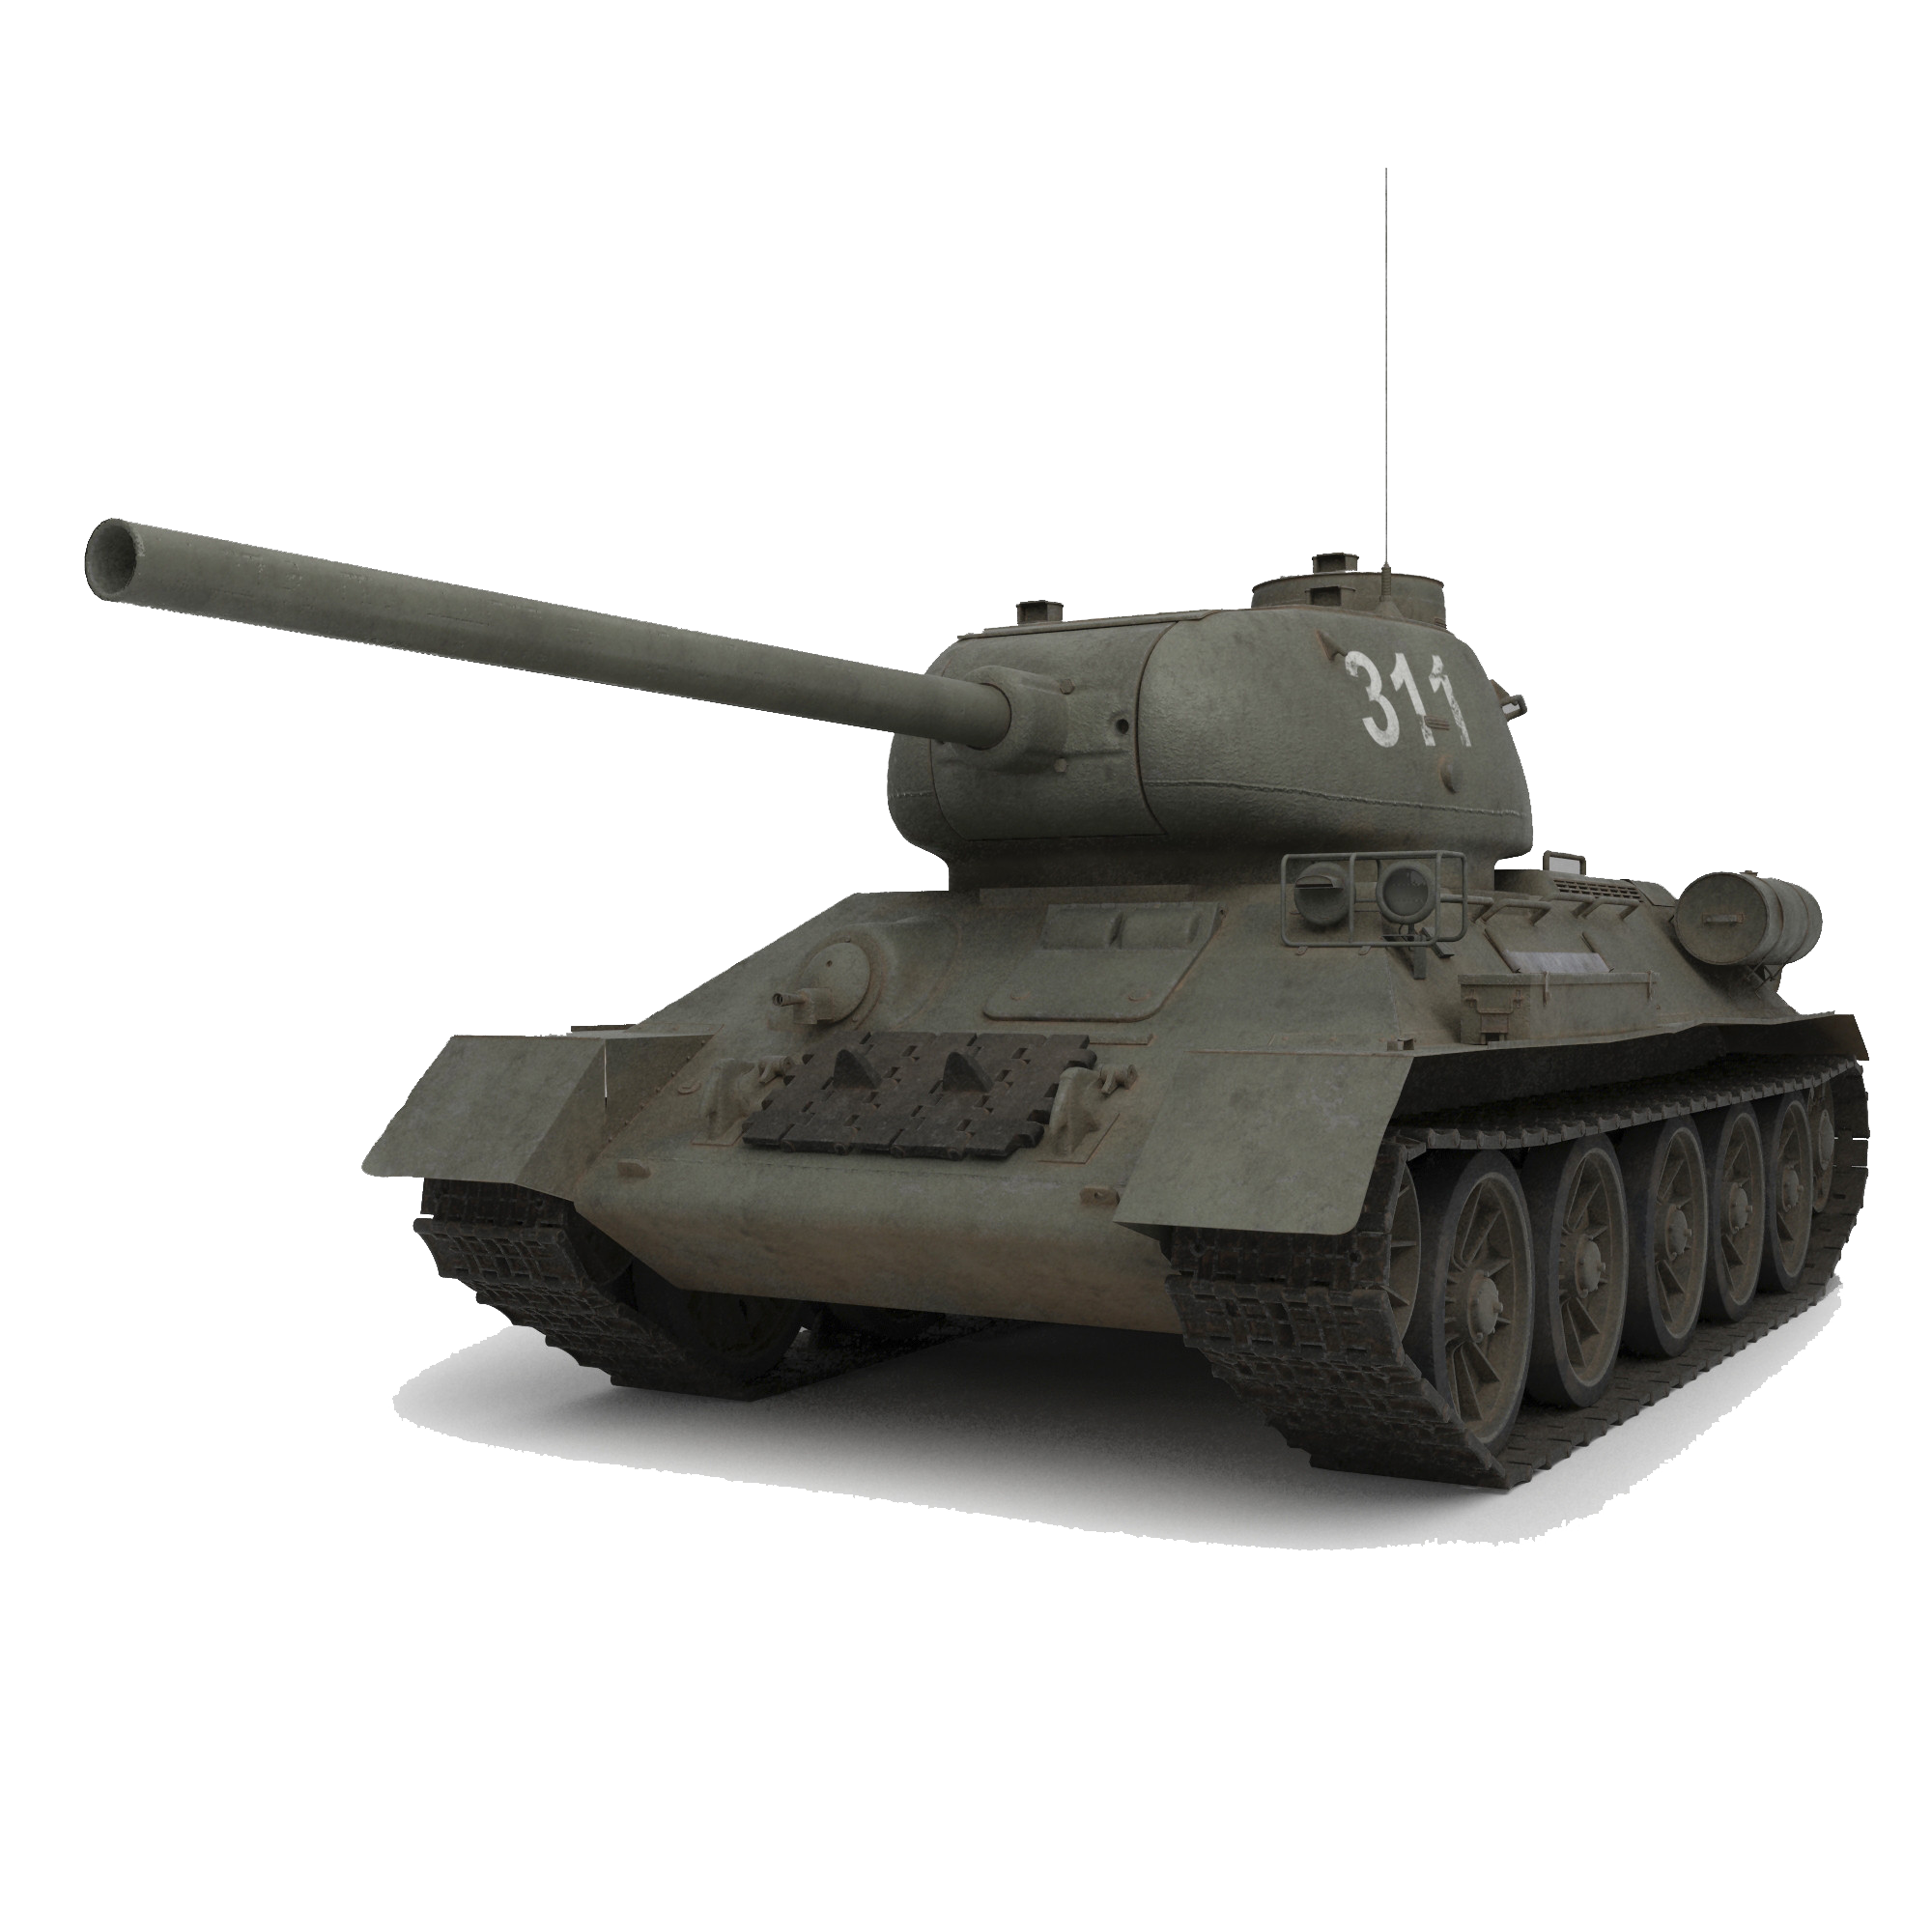 Military clipart turret. Tank png image purepng